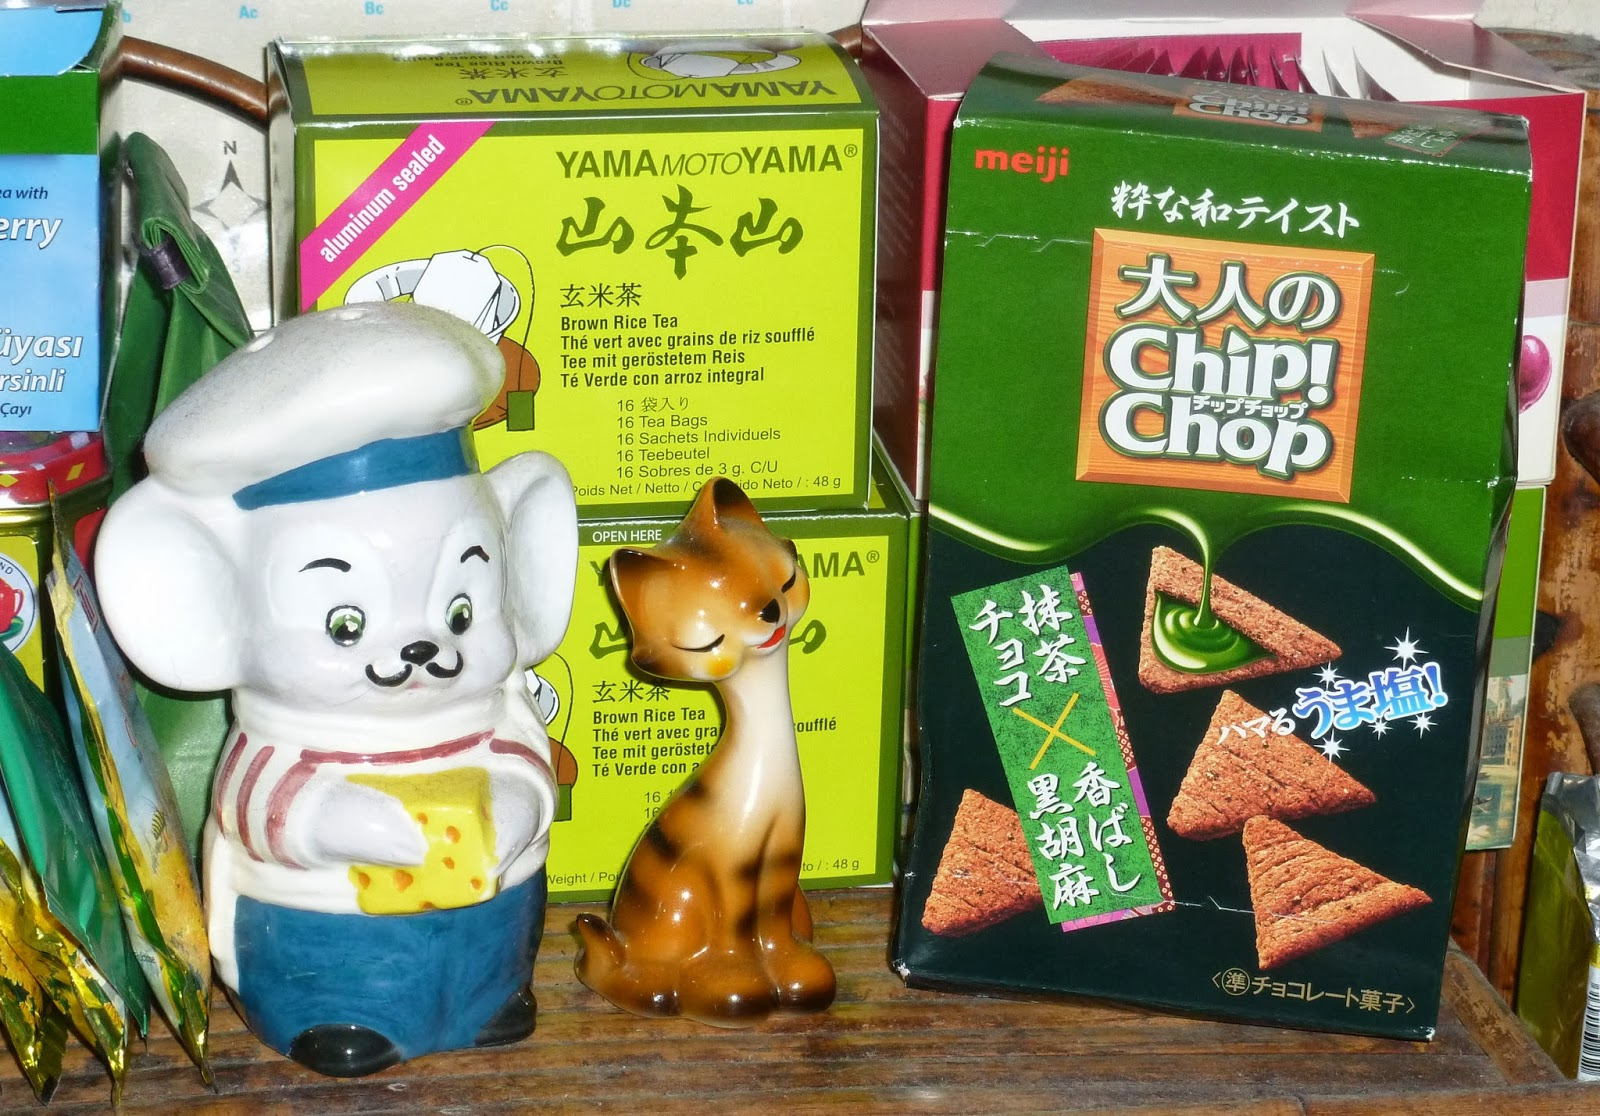 ... Meiji Chip! Chop Matcha Green Tea, Chocolate and Sesame Flavour snacks